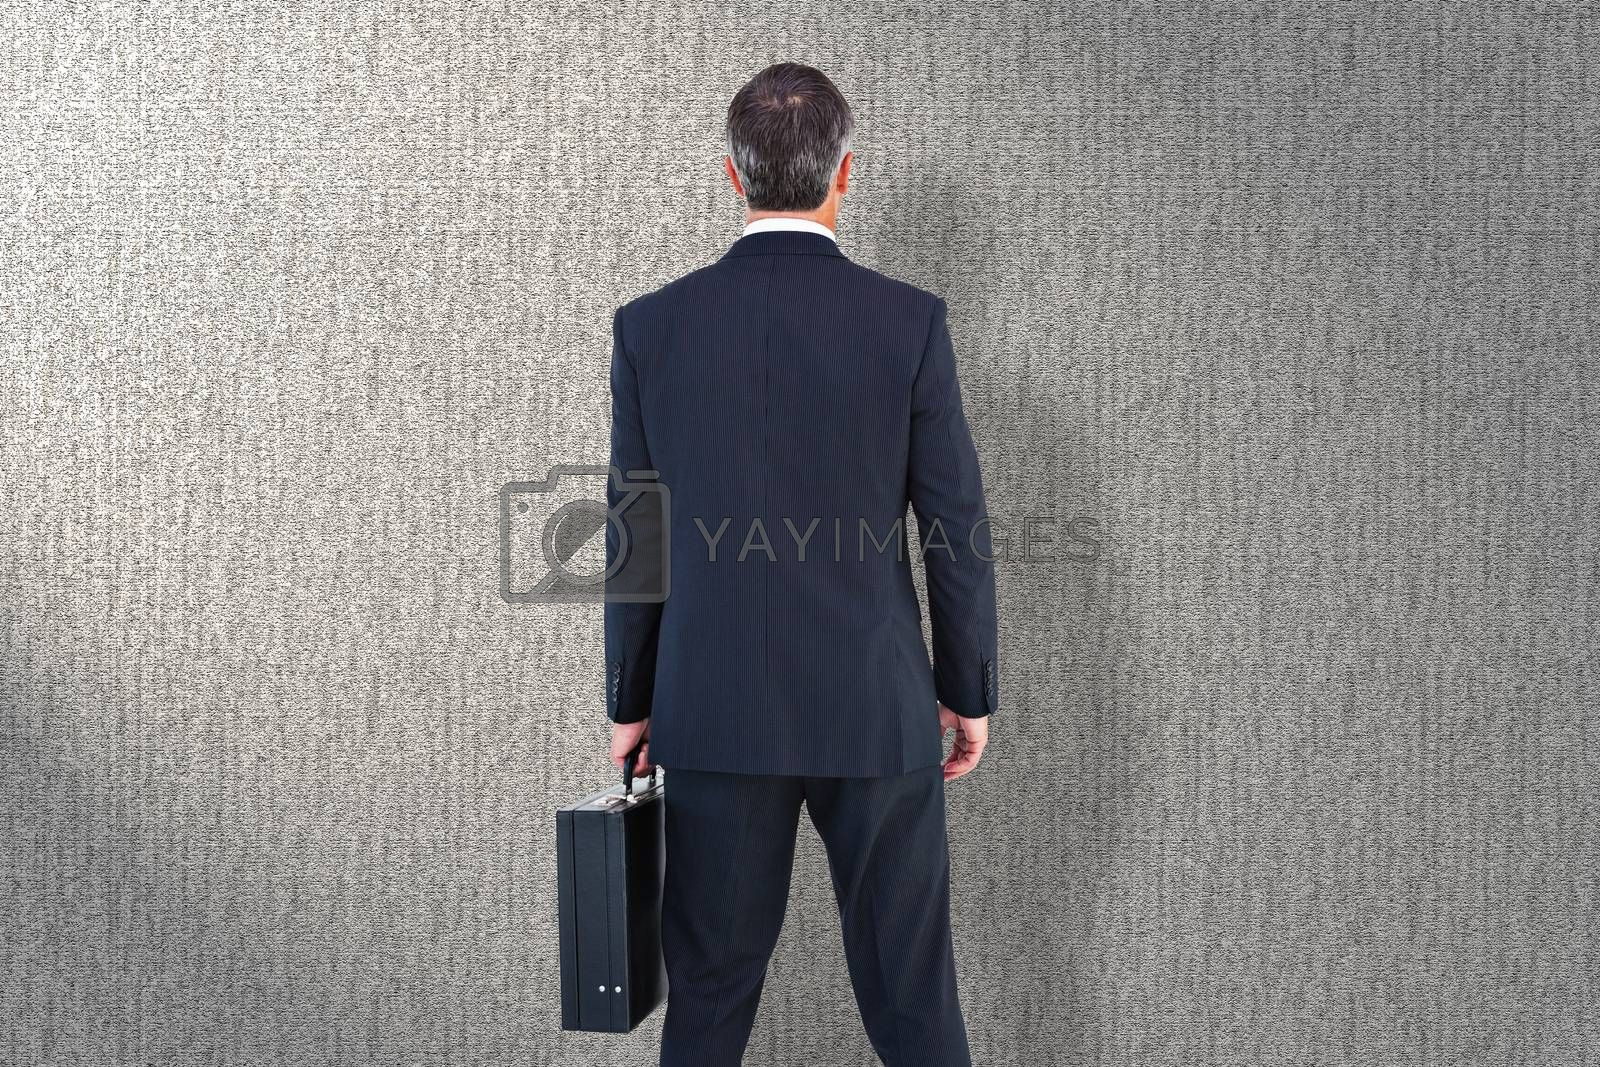 Businessman in suit holding a briefcase against grey background